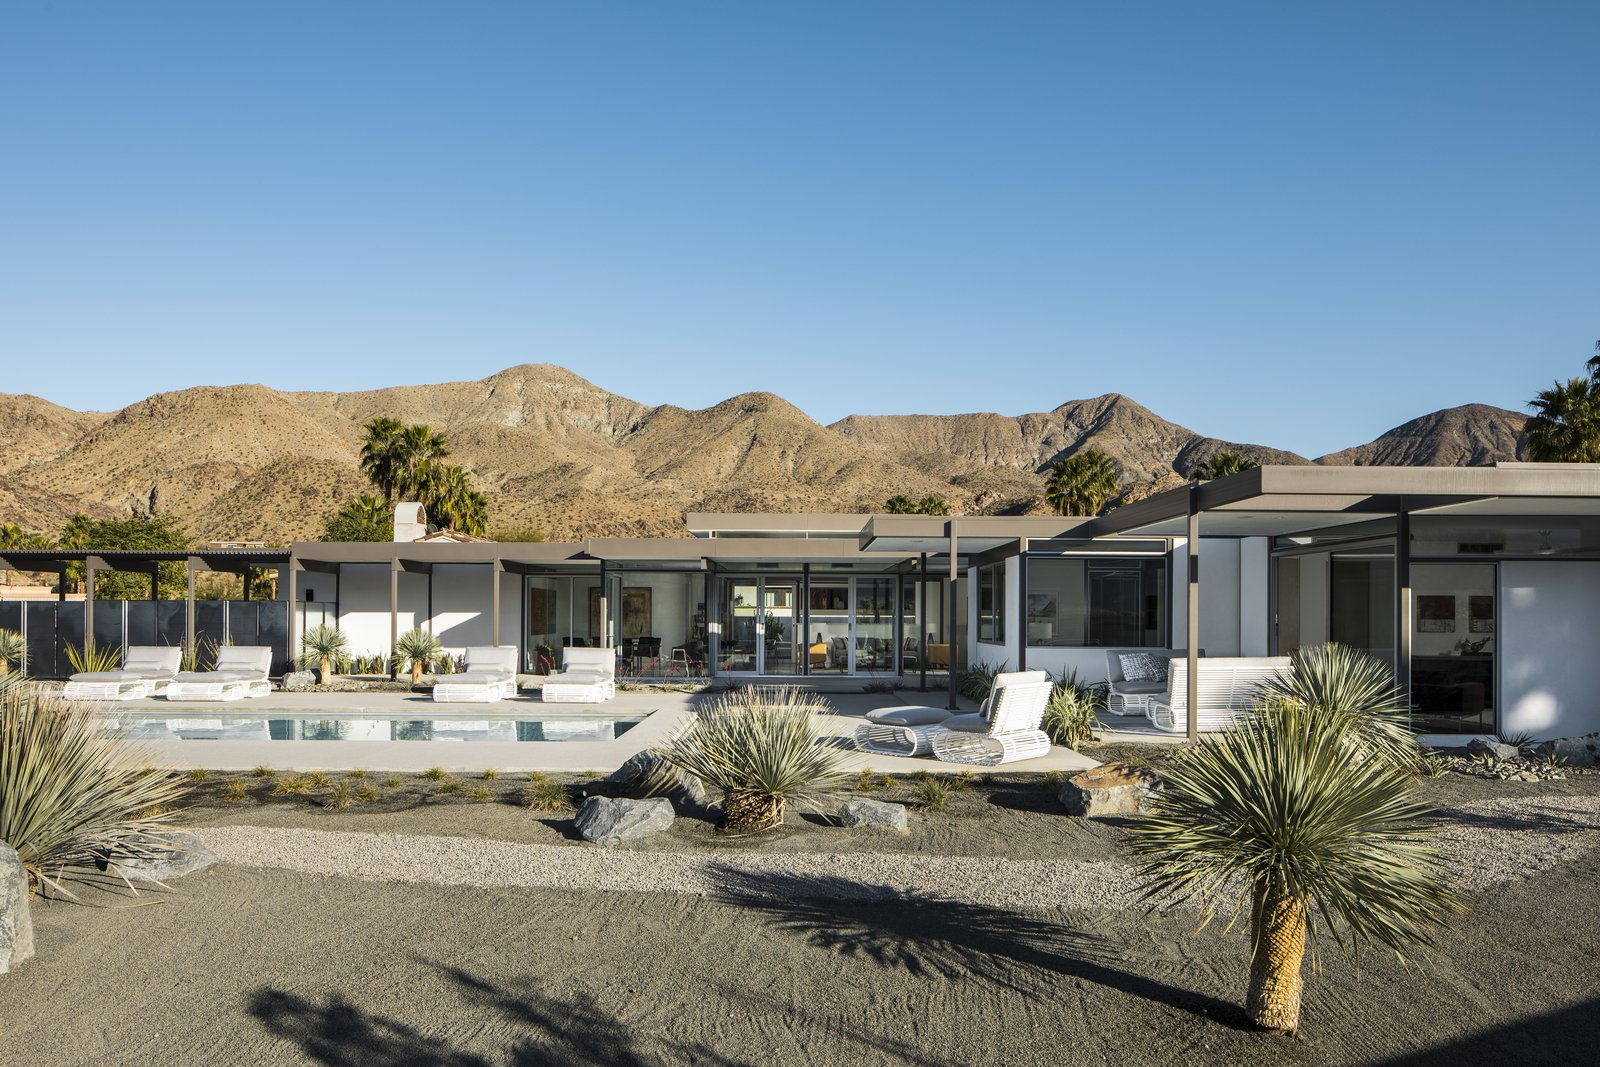 Mountainous terrain surrounds the modern, desert home.  Horizontal roof planes extend outward, connected the home to the dessert land.